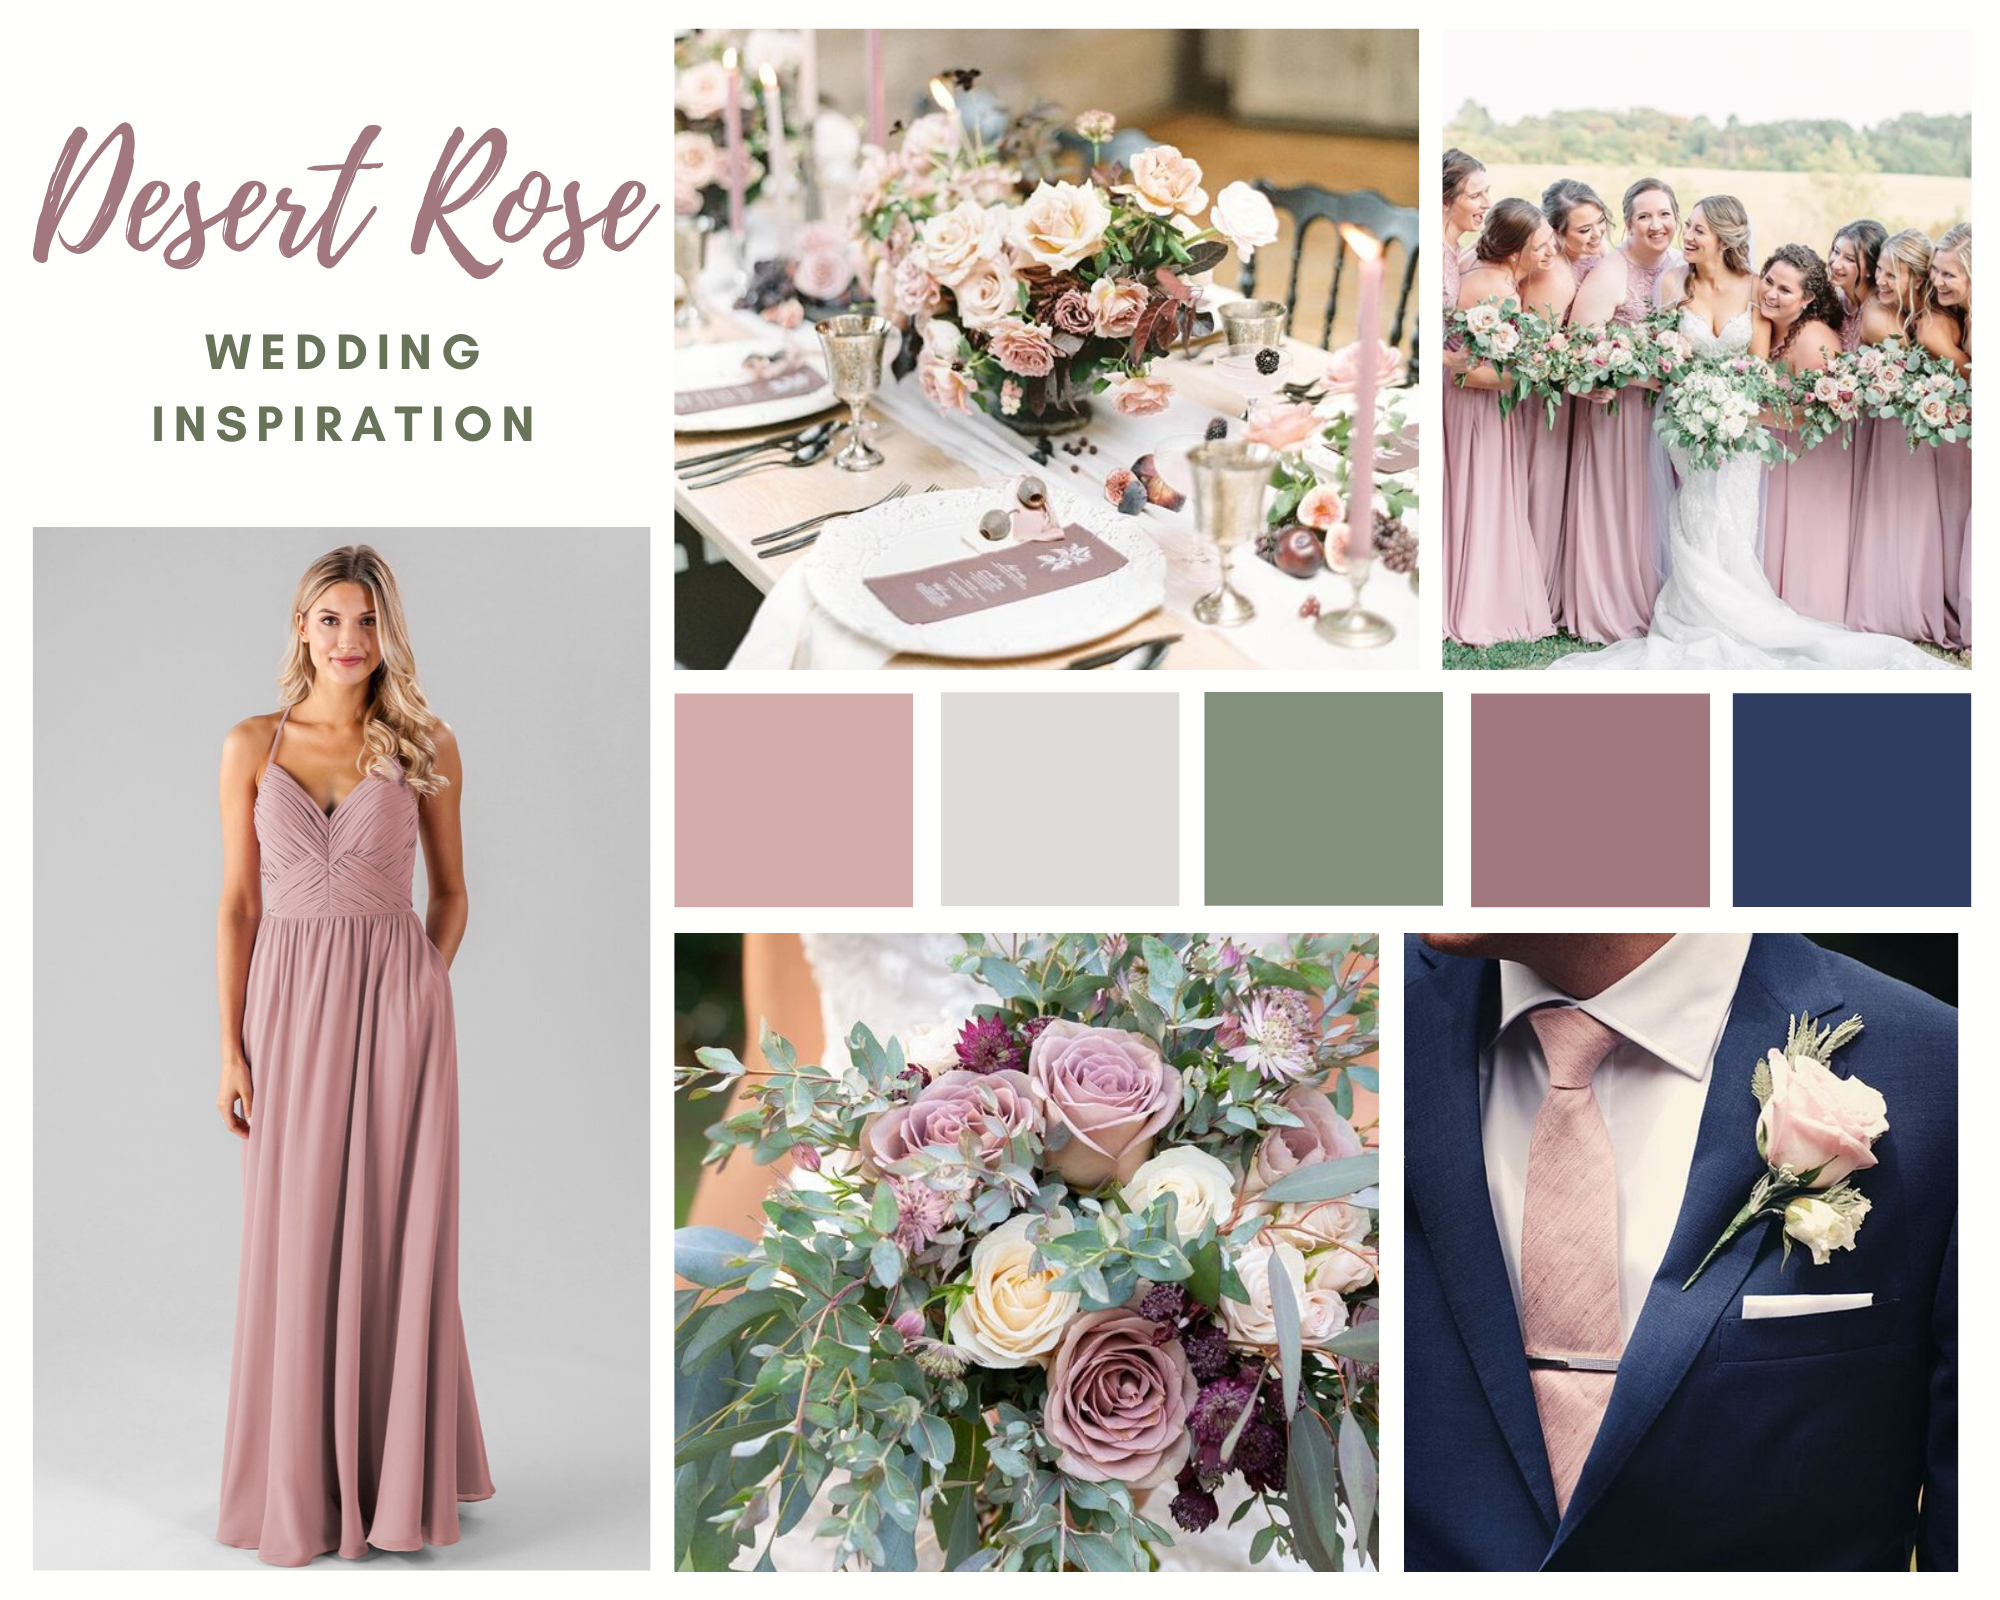 Kennedy Blue Caitlin In 2020 June Wedding Colors April Wedding Colors Wedding Colors